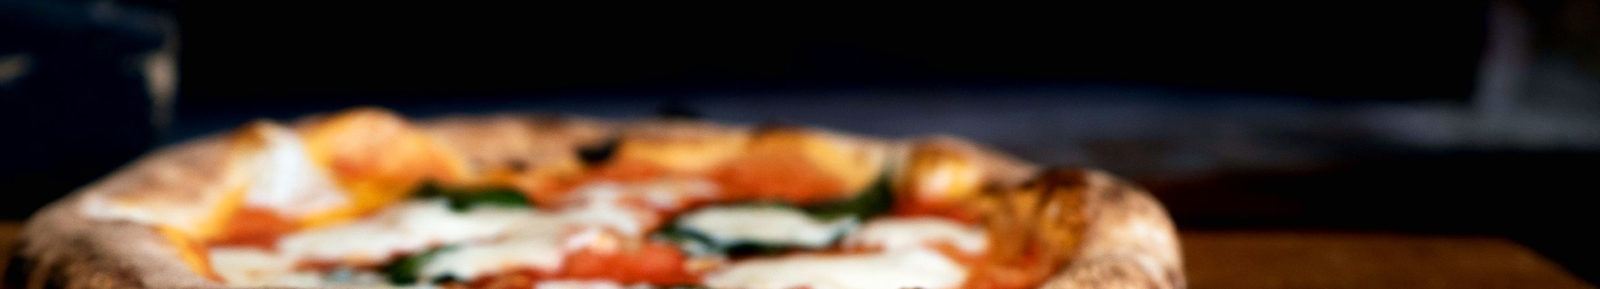 Pizza Catering Hire